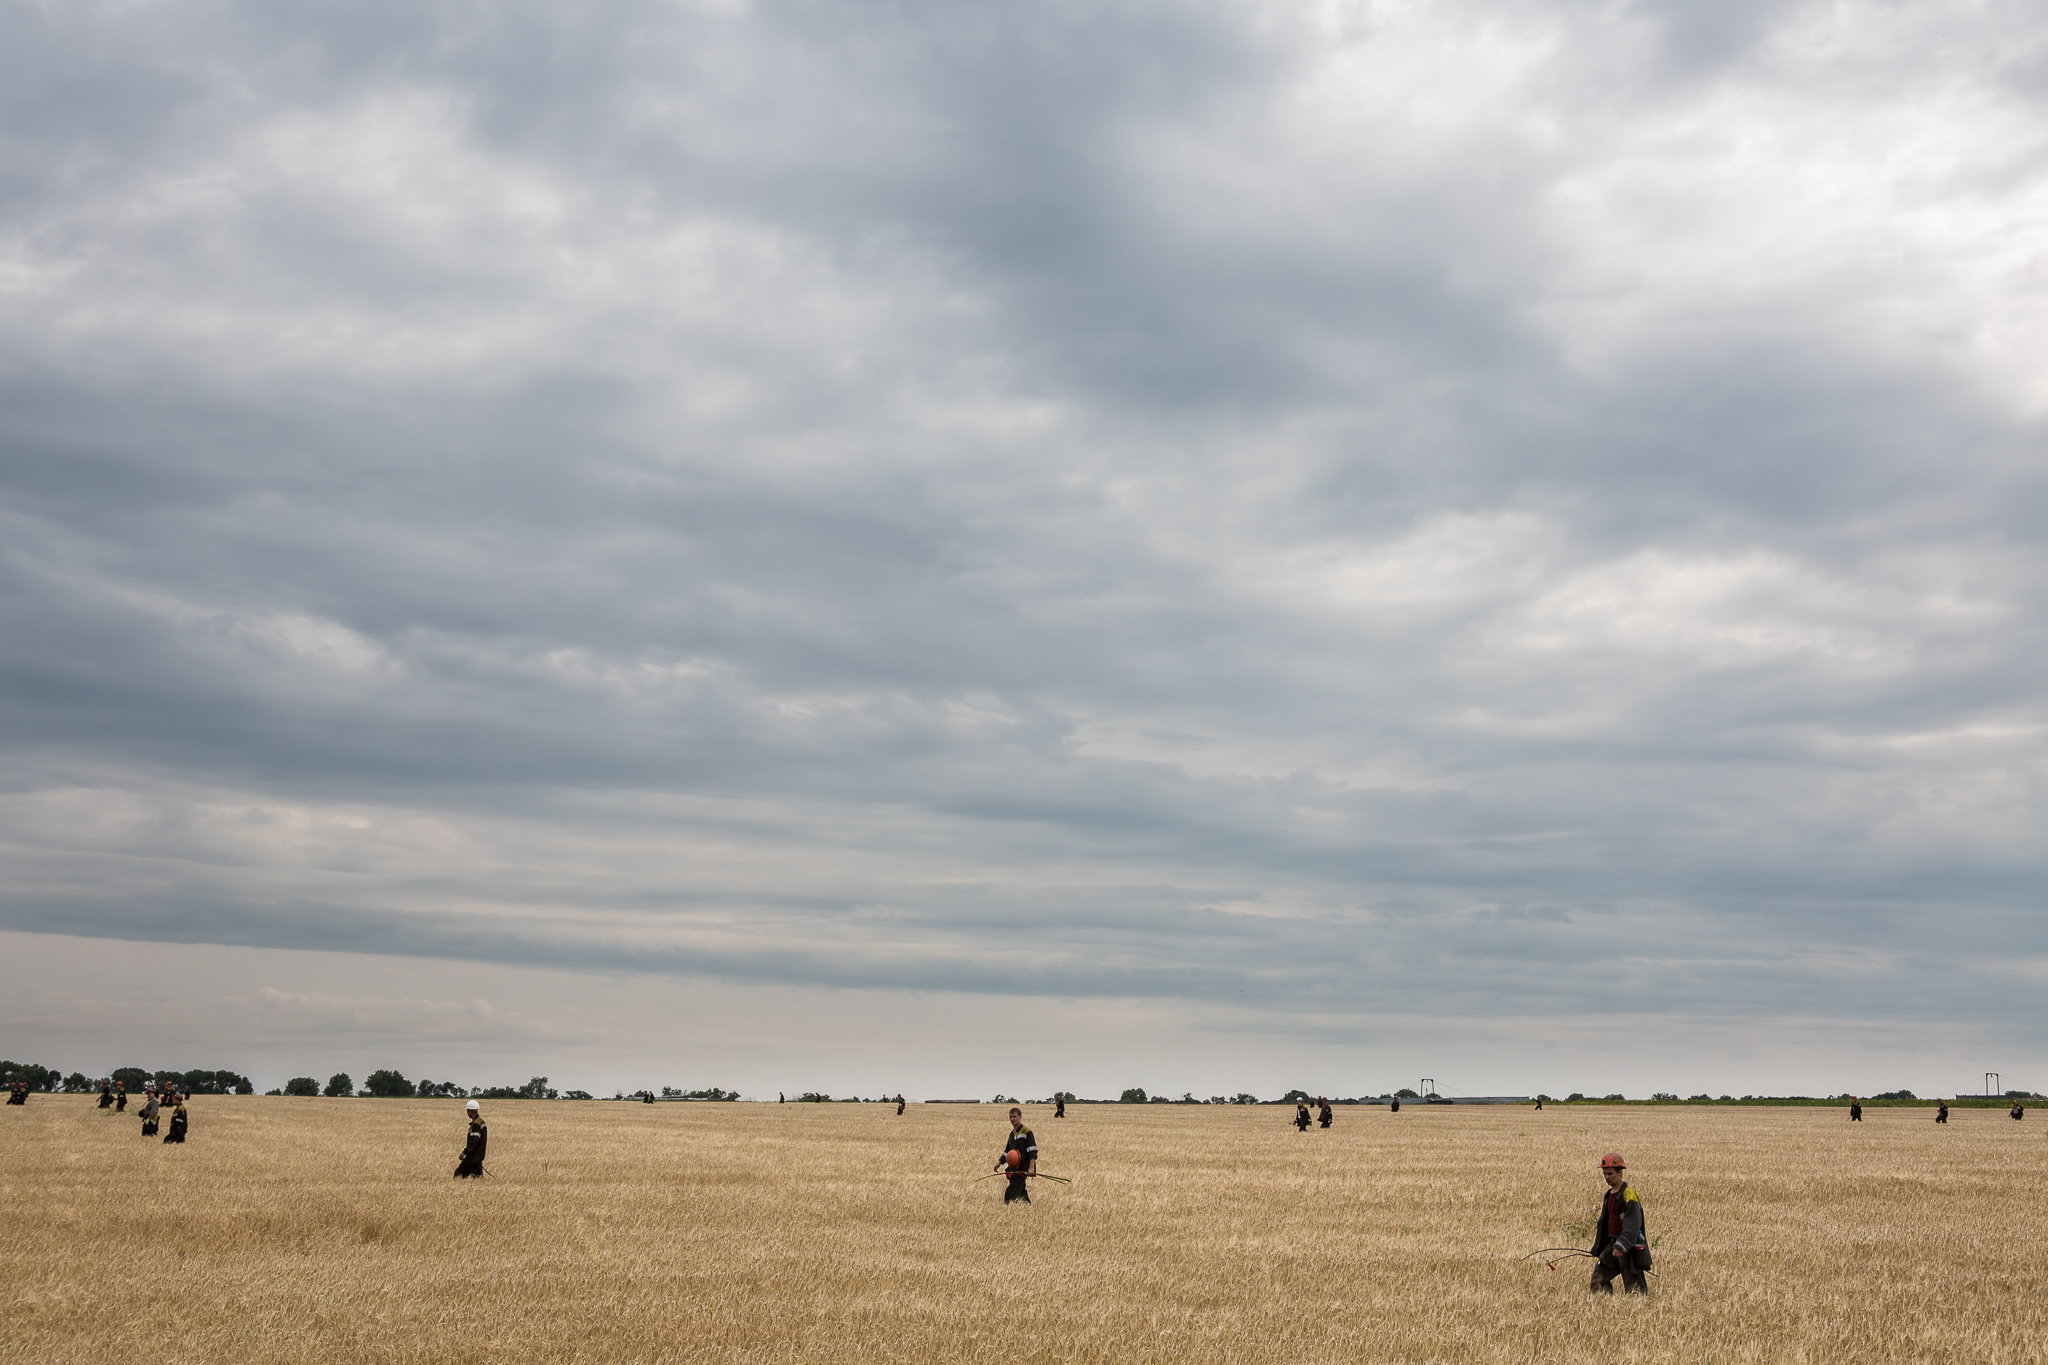 A group of off-duty coal miners searches a wheat field looking for remnants of Malaysia Airlines flight MH 17 on July 19, 2014 in Grabovo, Ukraine. The flight was traveling from Amsterdam to Kuala Lumpur when it crashed killing all 298 on board including 80 children. The aircraft was allegedly shot down by a missile and investigations continue over the perpetrators of the attack.